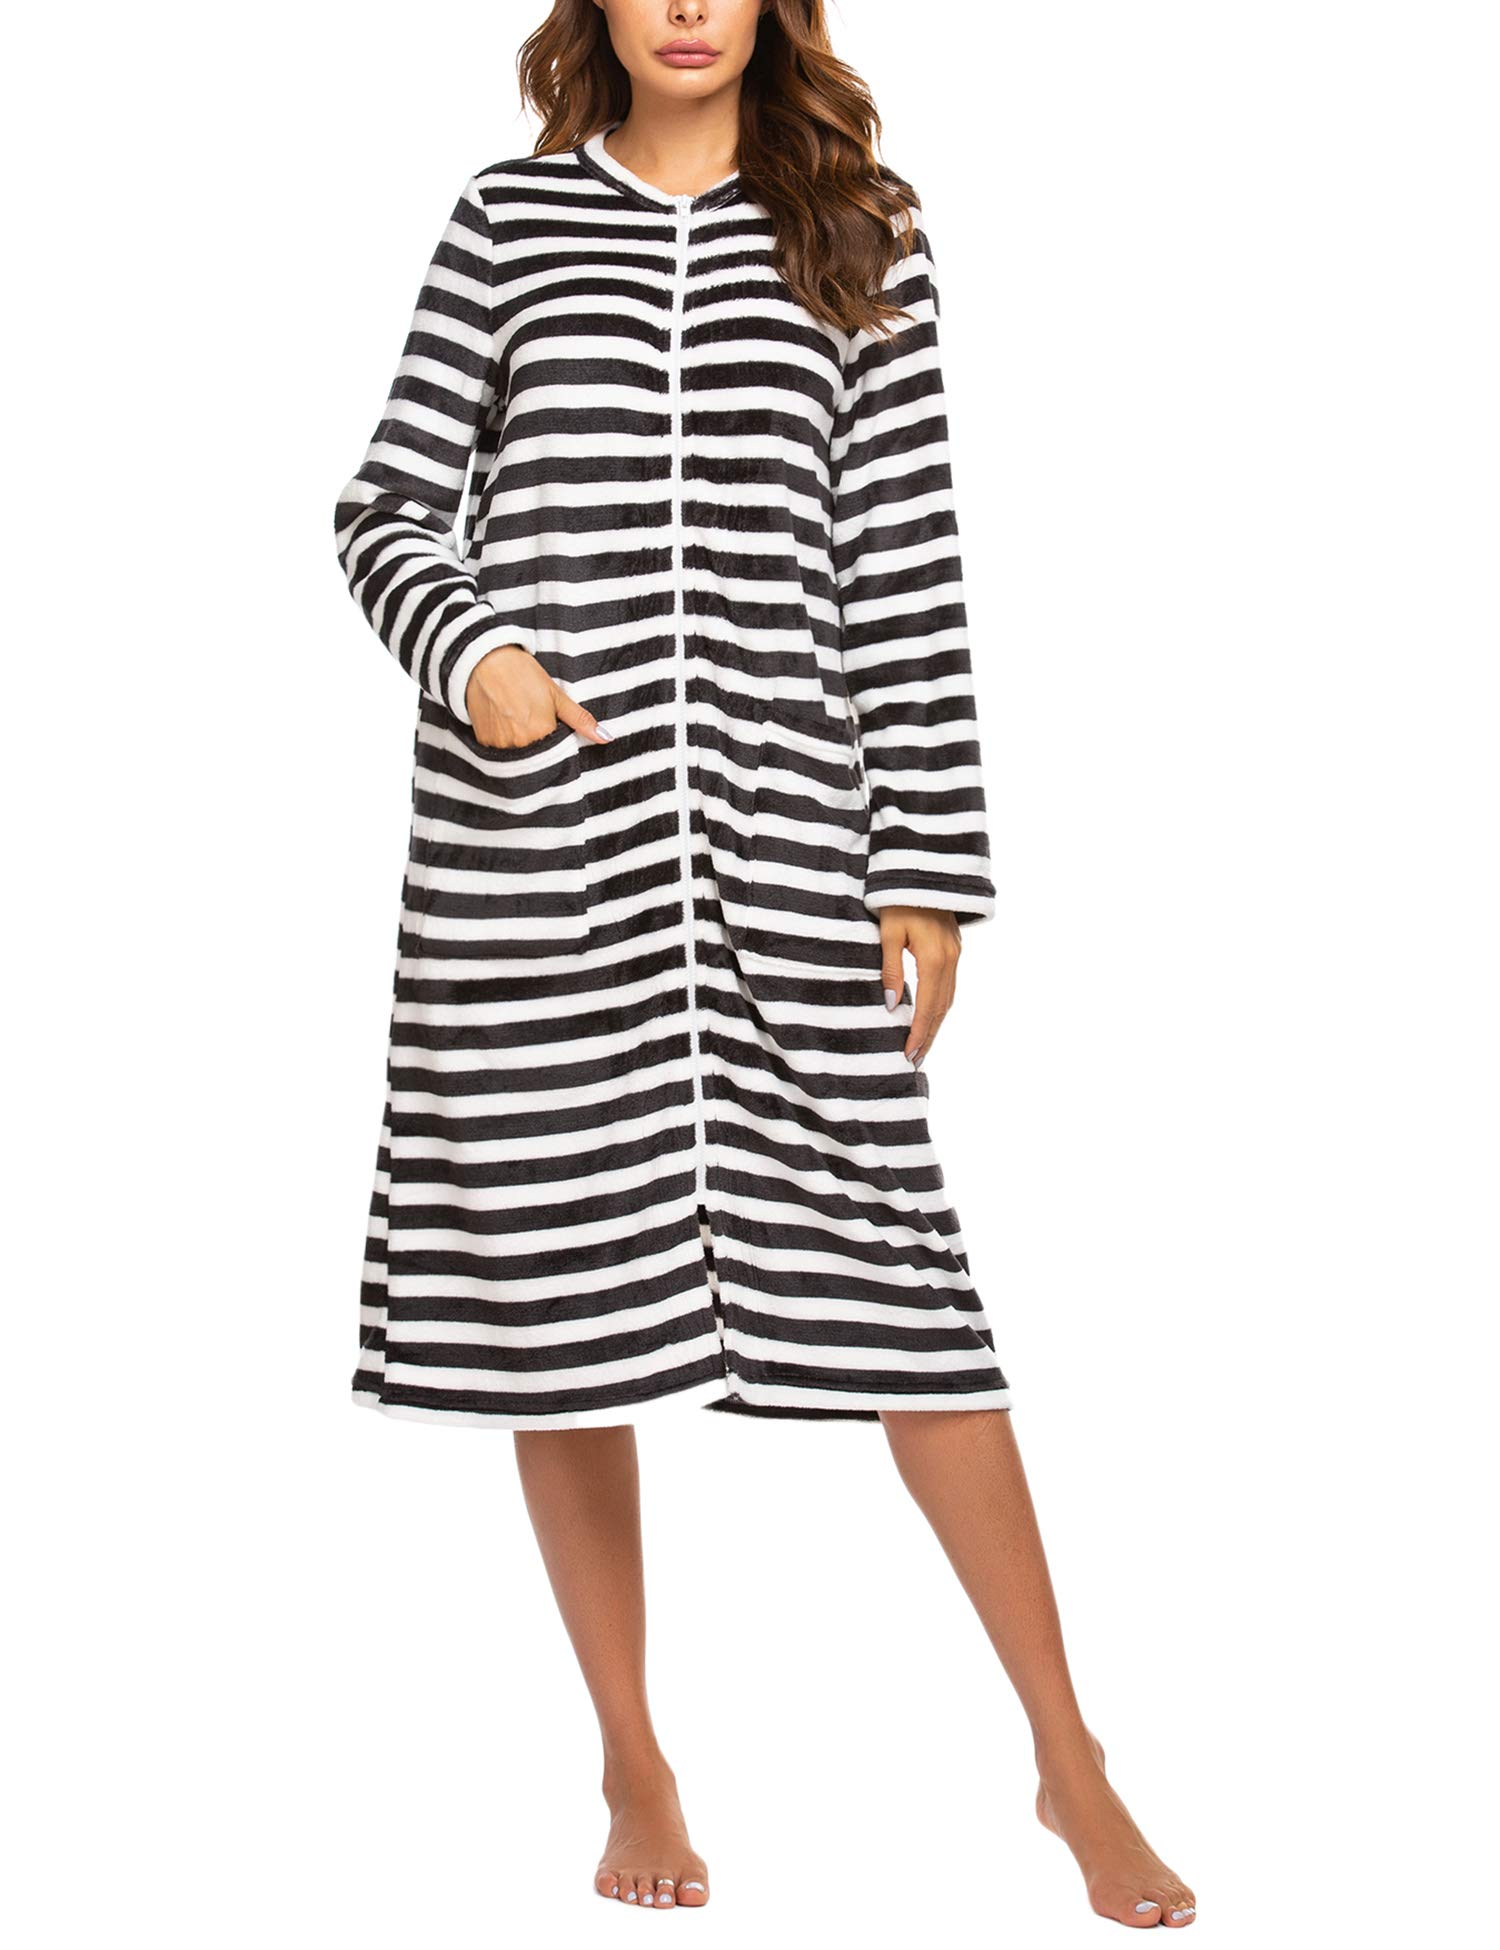 Ekouaer Women Long Sleeve Pajamas House Coat Zipper Front Robes Full Length Nightgowns with Pockets Striped Loungewear